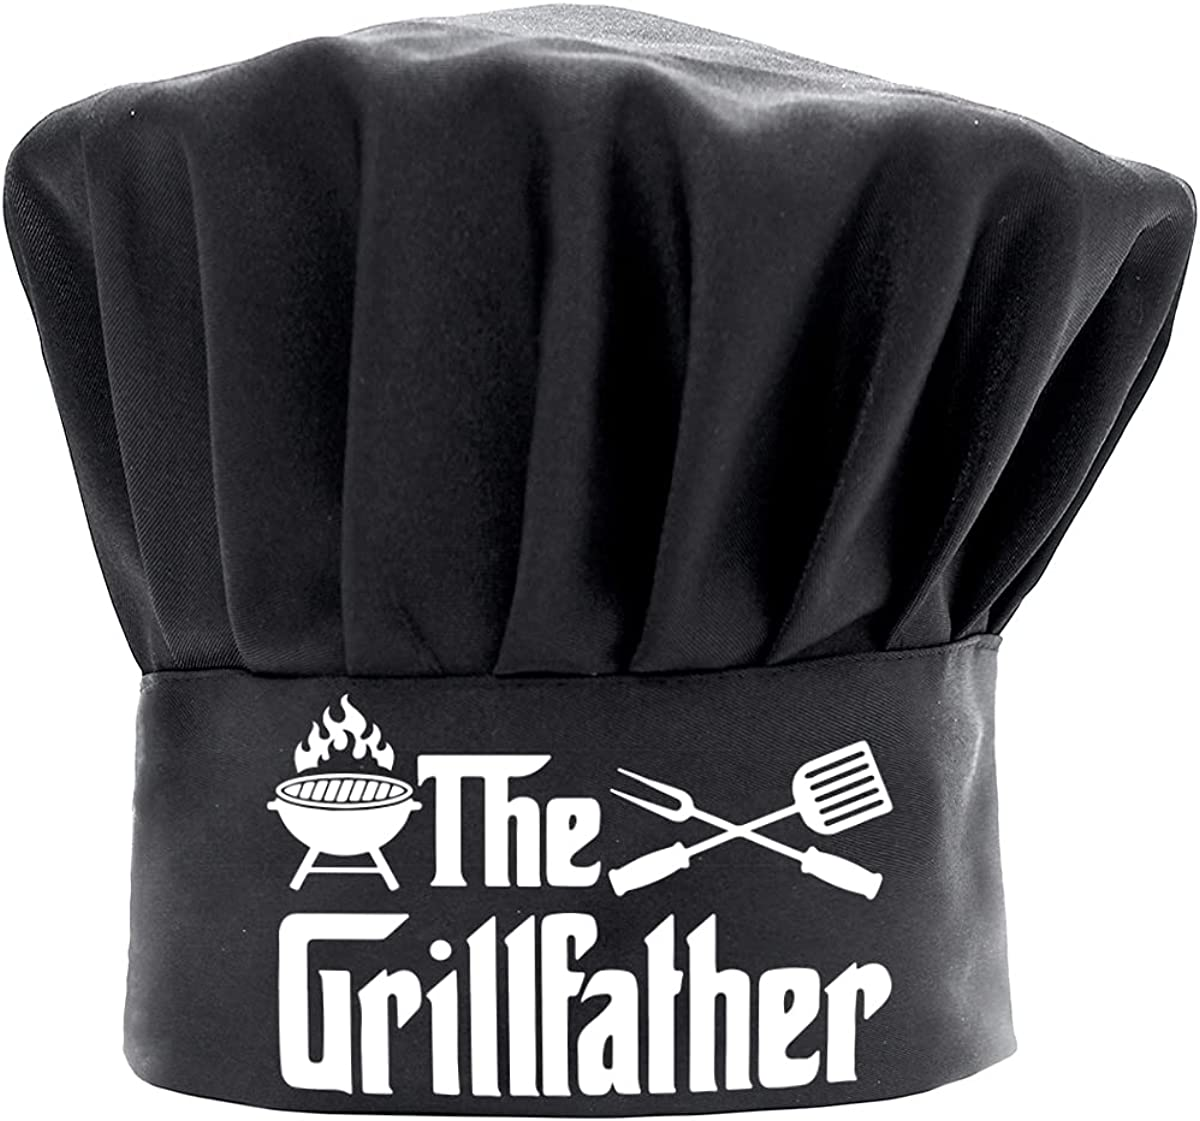 Chef Hats for Men Funny Black Grillfather A BBQ Cooking Max 63% OFF Hat SEAL limited product The